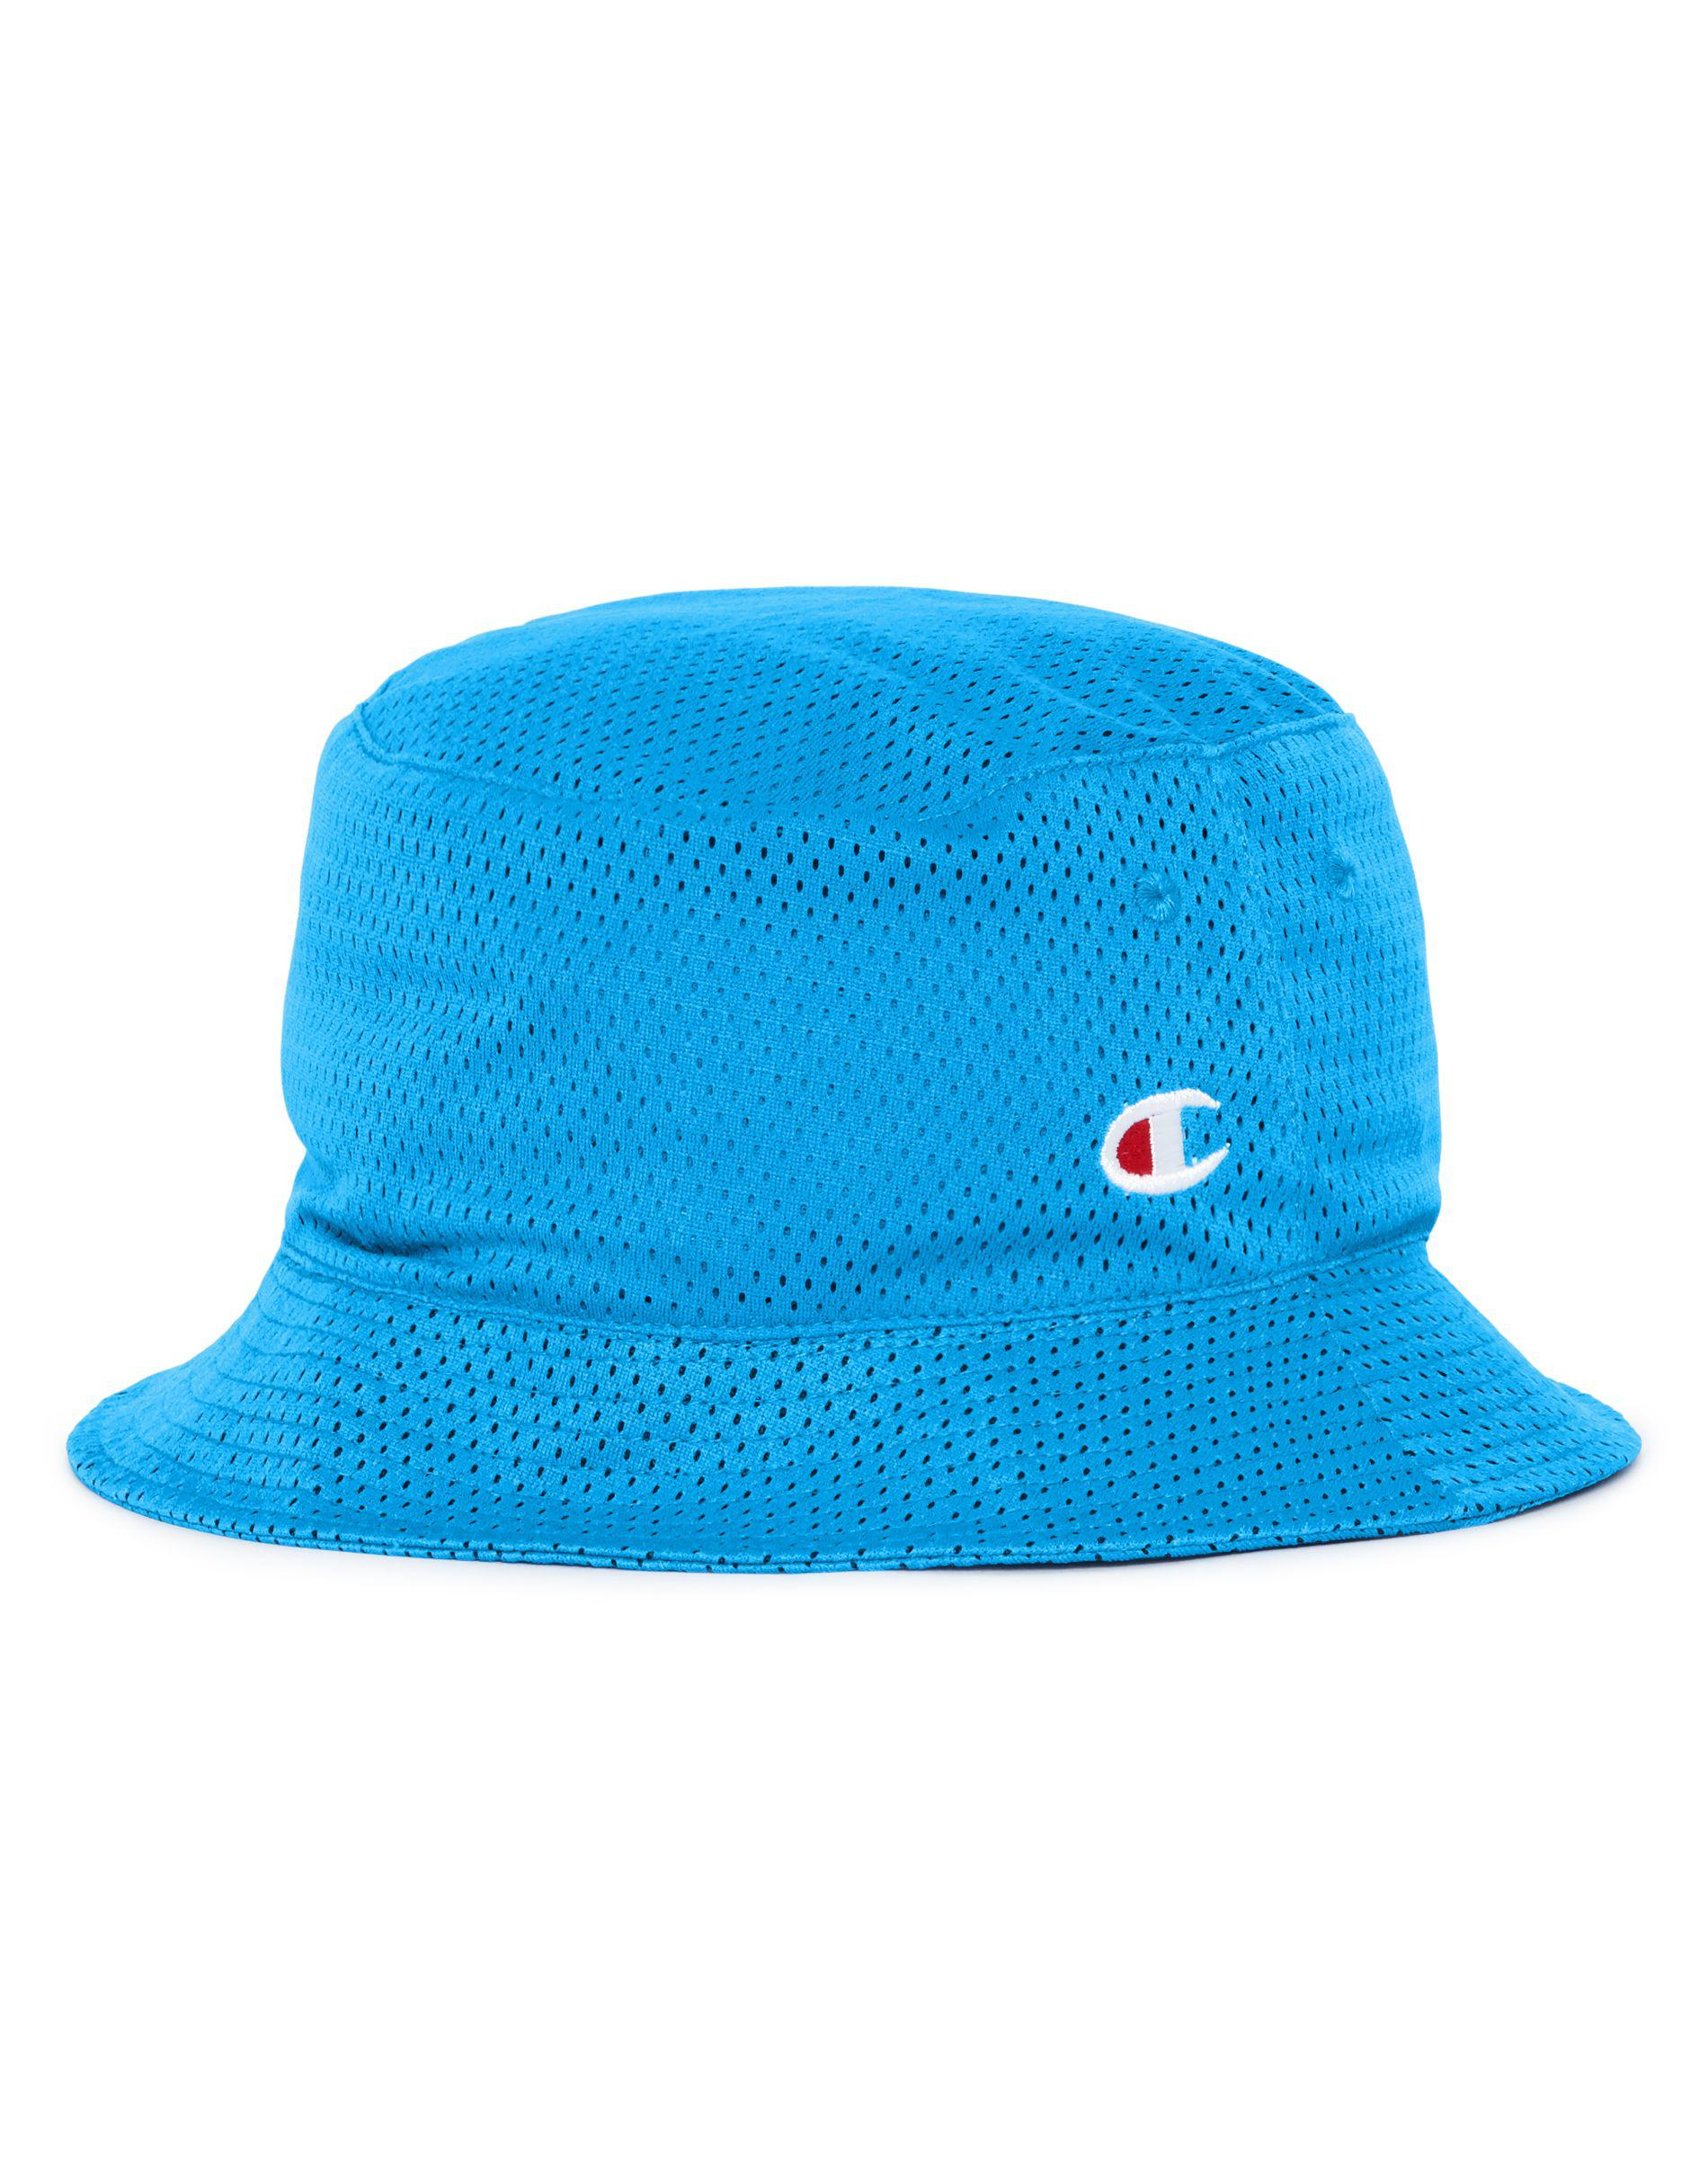 88f480aabd5 Lyst - Champion Lifetm Reversible Mesh Bucket Hat in Blue for Men